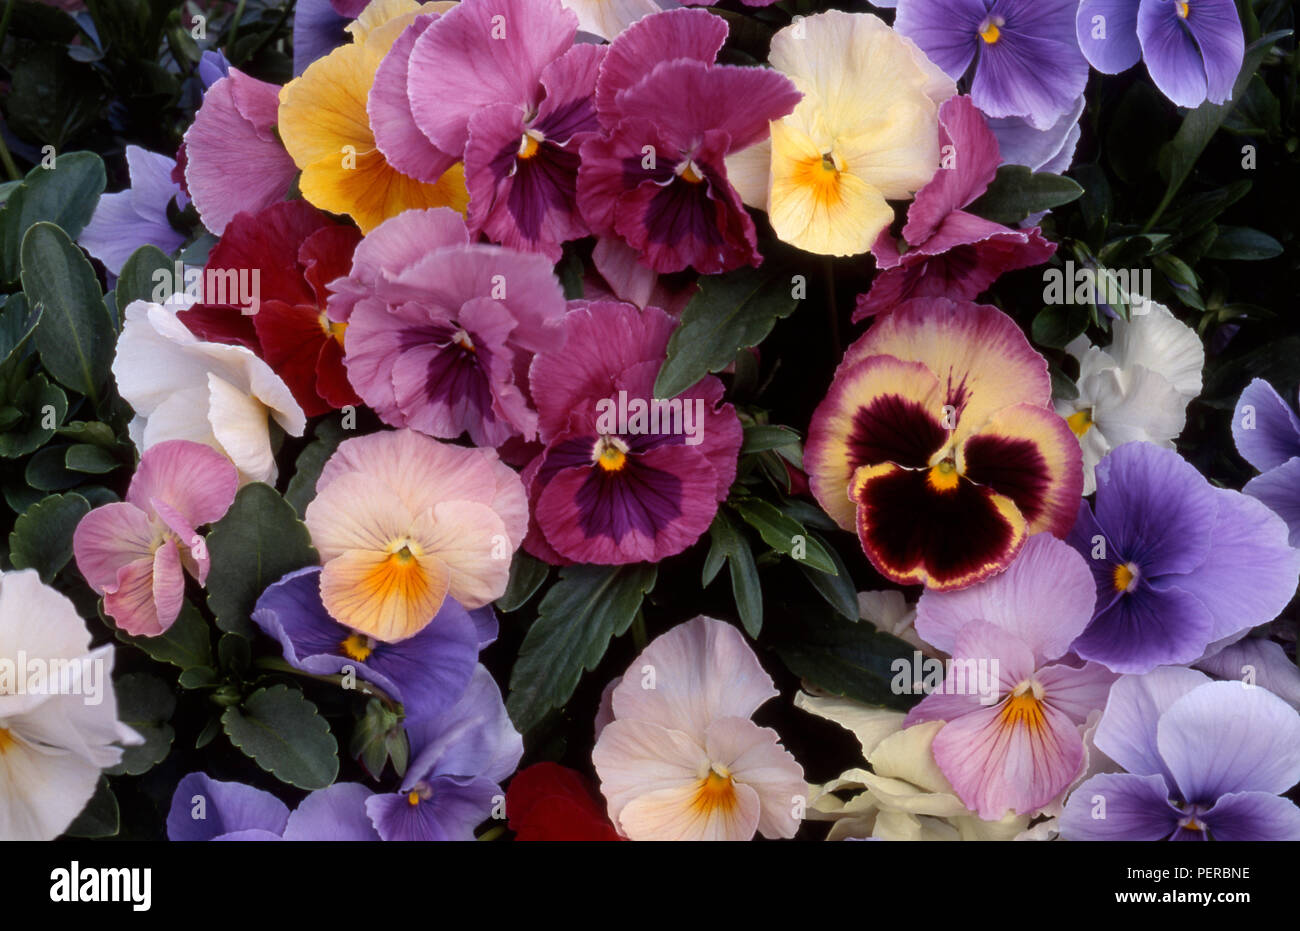 Colourful pansy flowers (Viola x wittrockiana) - Stock Image